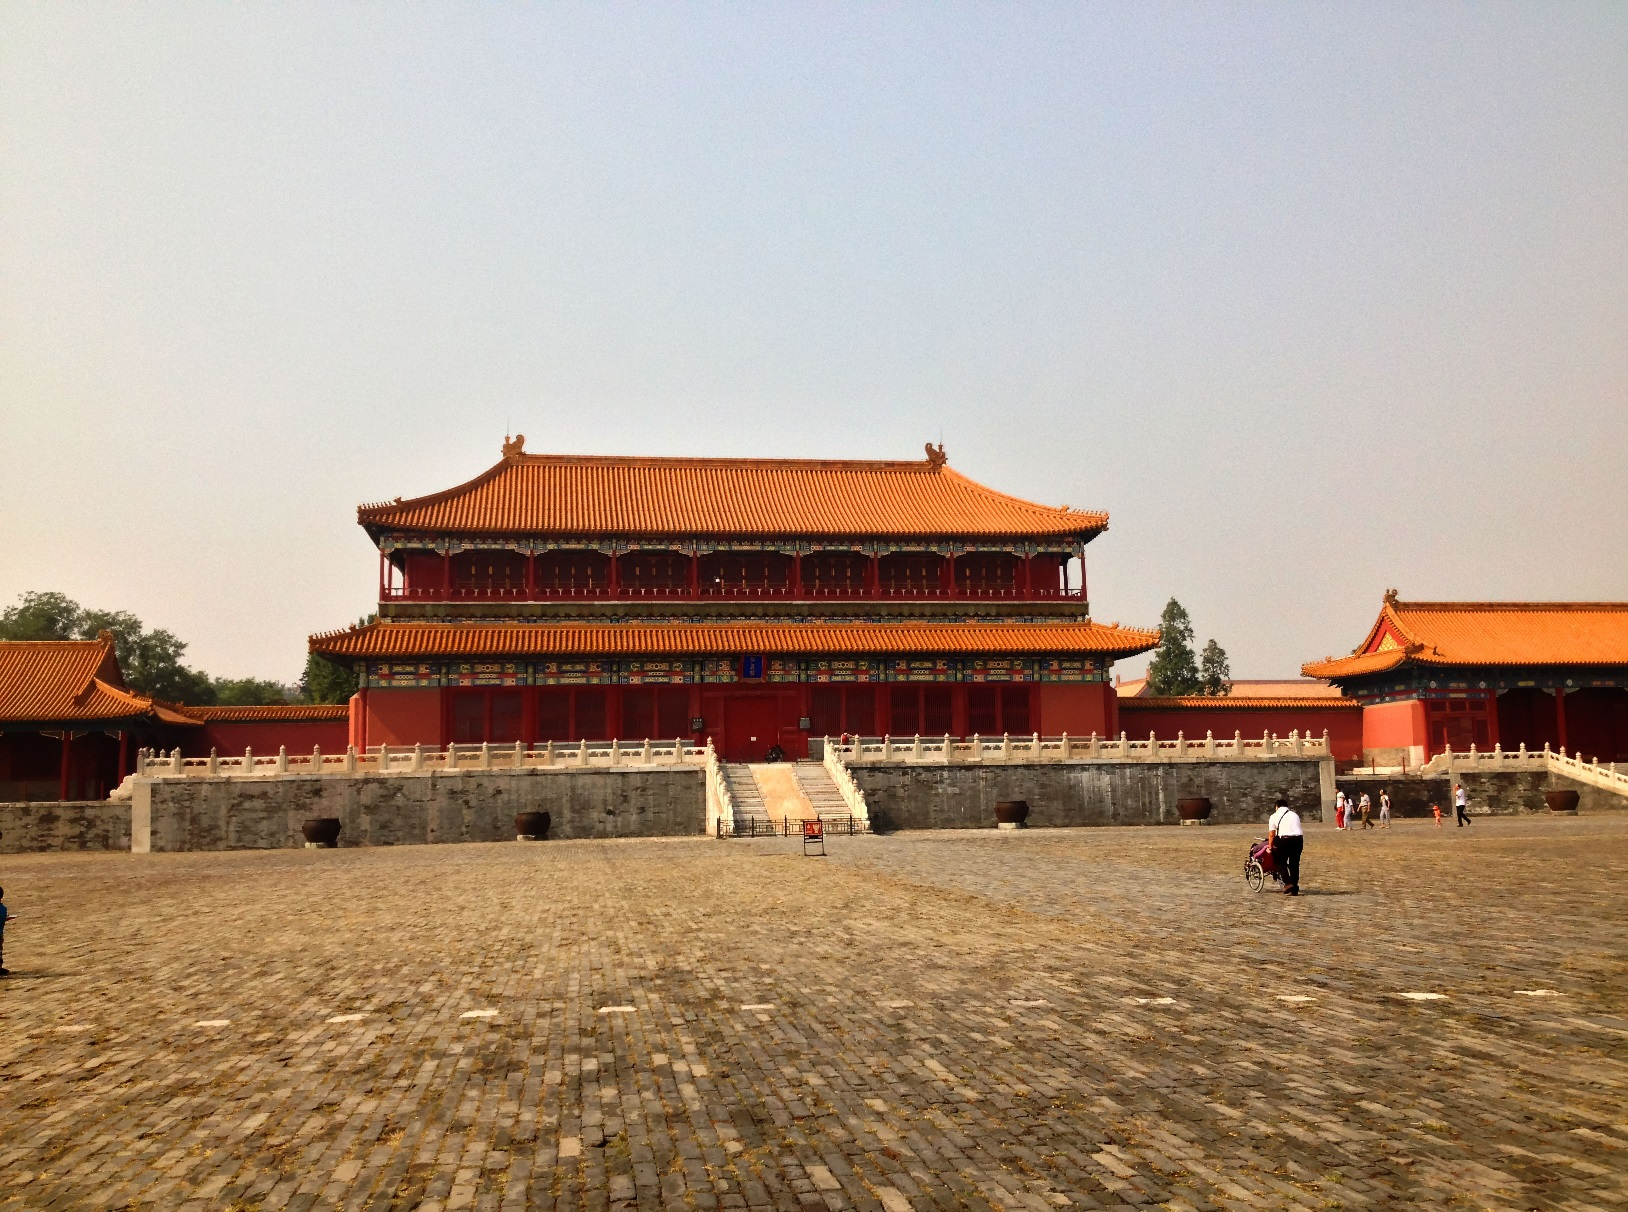 Gfp-beijing-forbidden-palace-side-palace